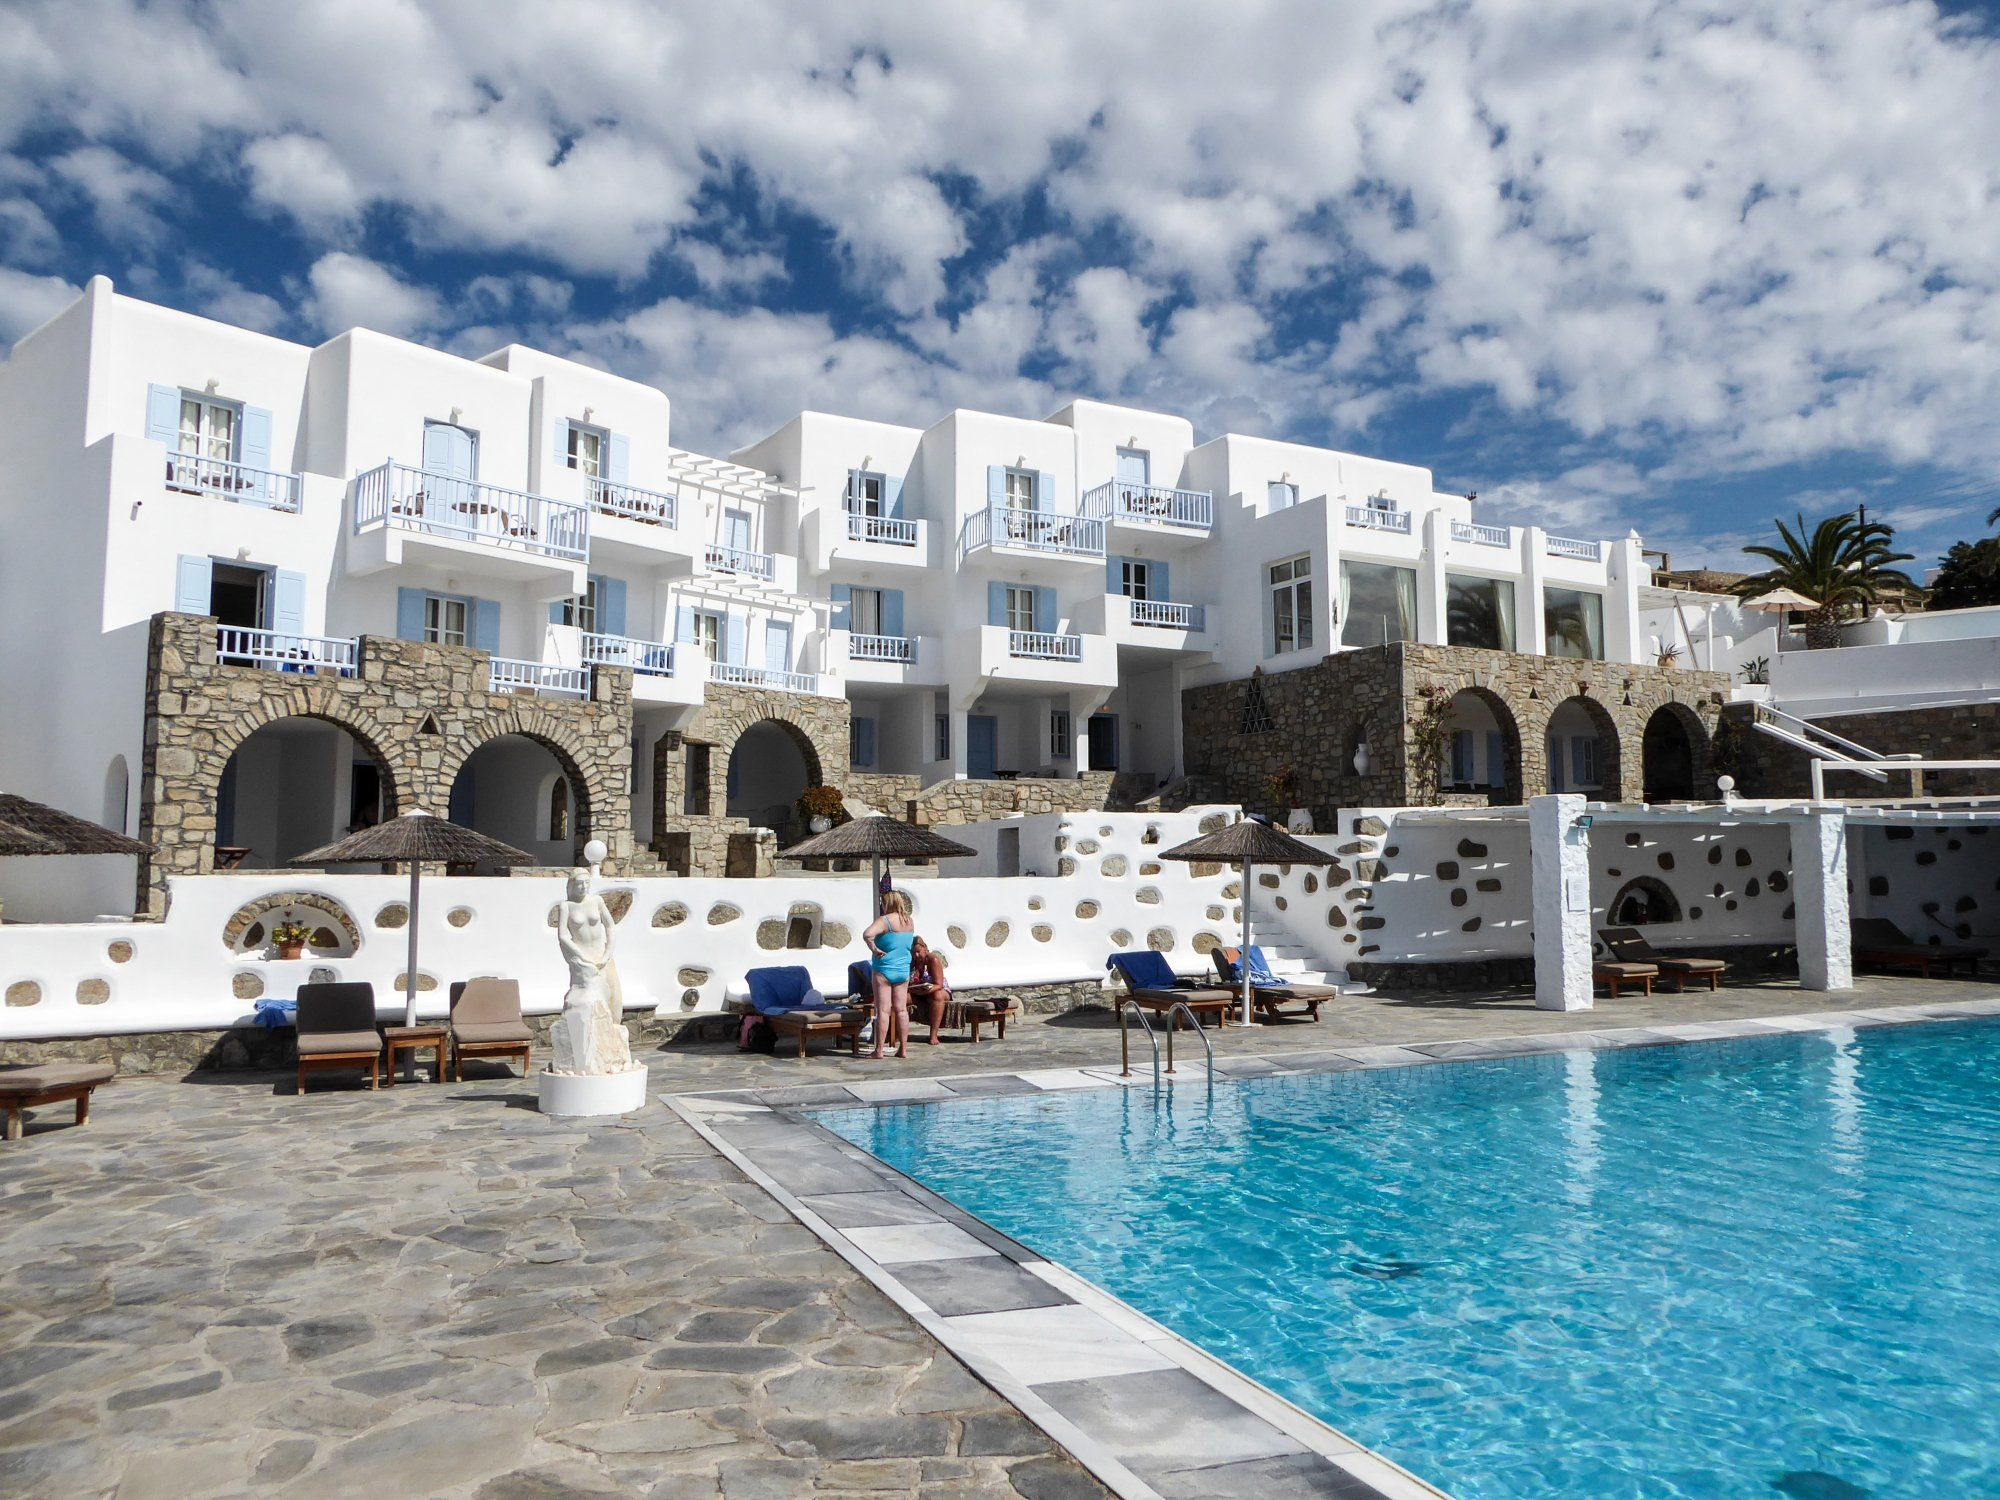 Book Manoulas Mykonos Beach Resort Agios Ioannis Diakoftis On Tripadvisor See 214 Traveler Reviews